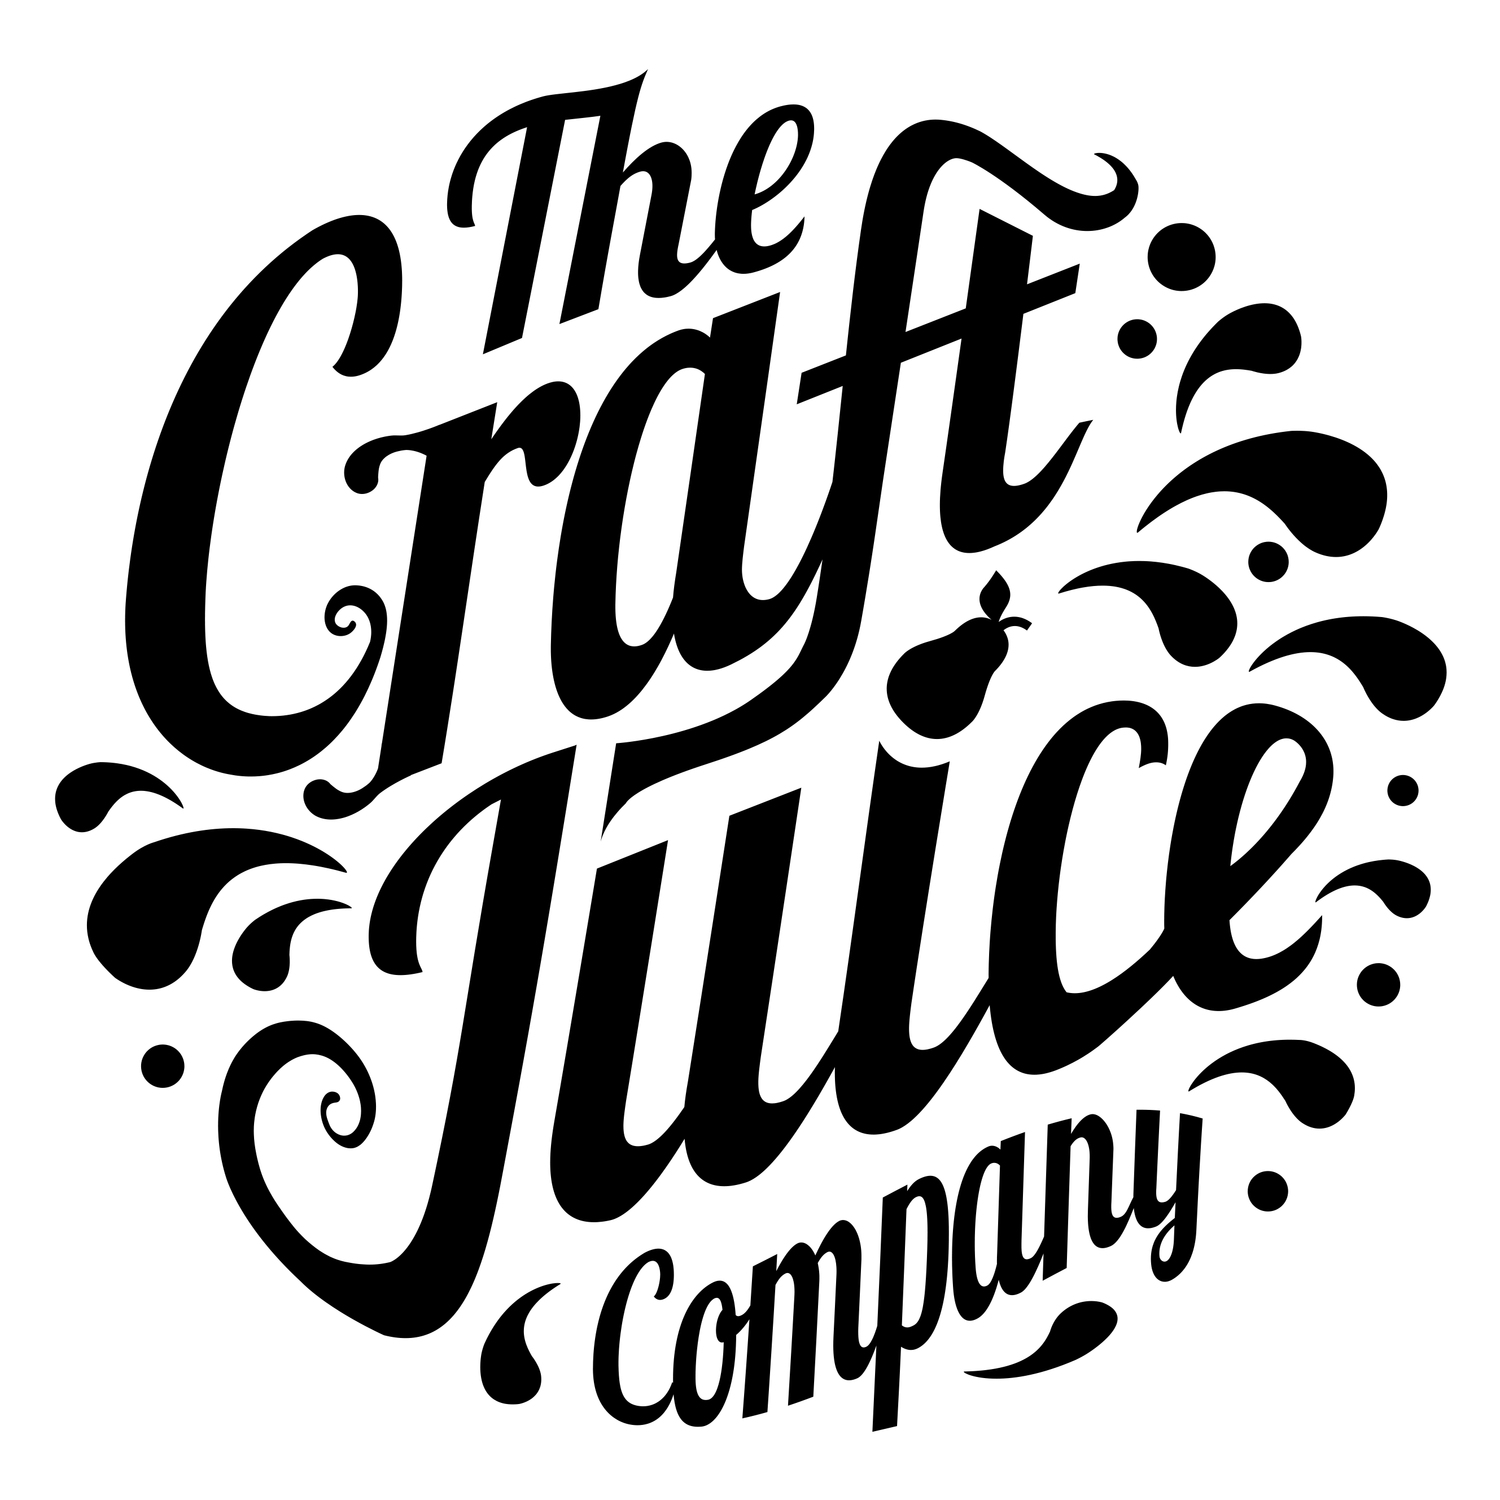 The Craft Juice Company